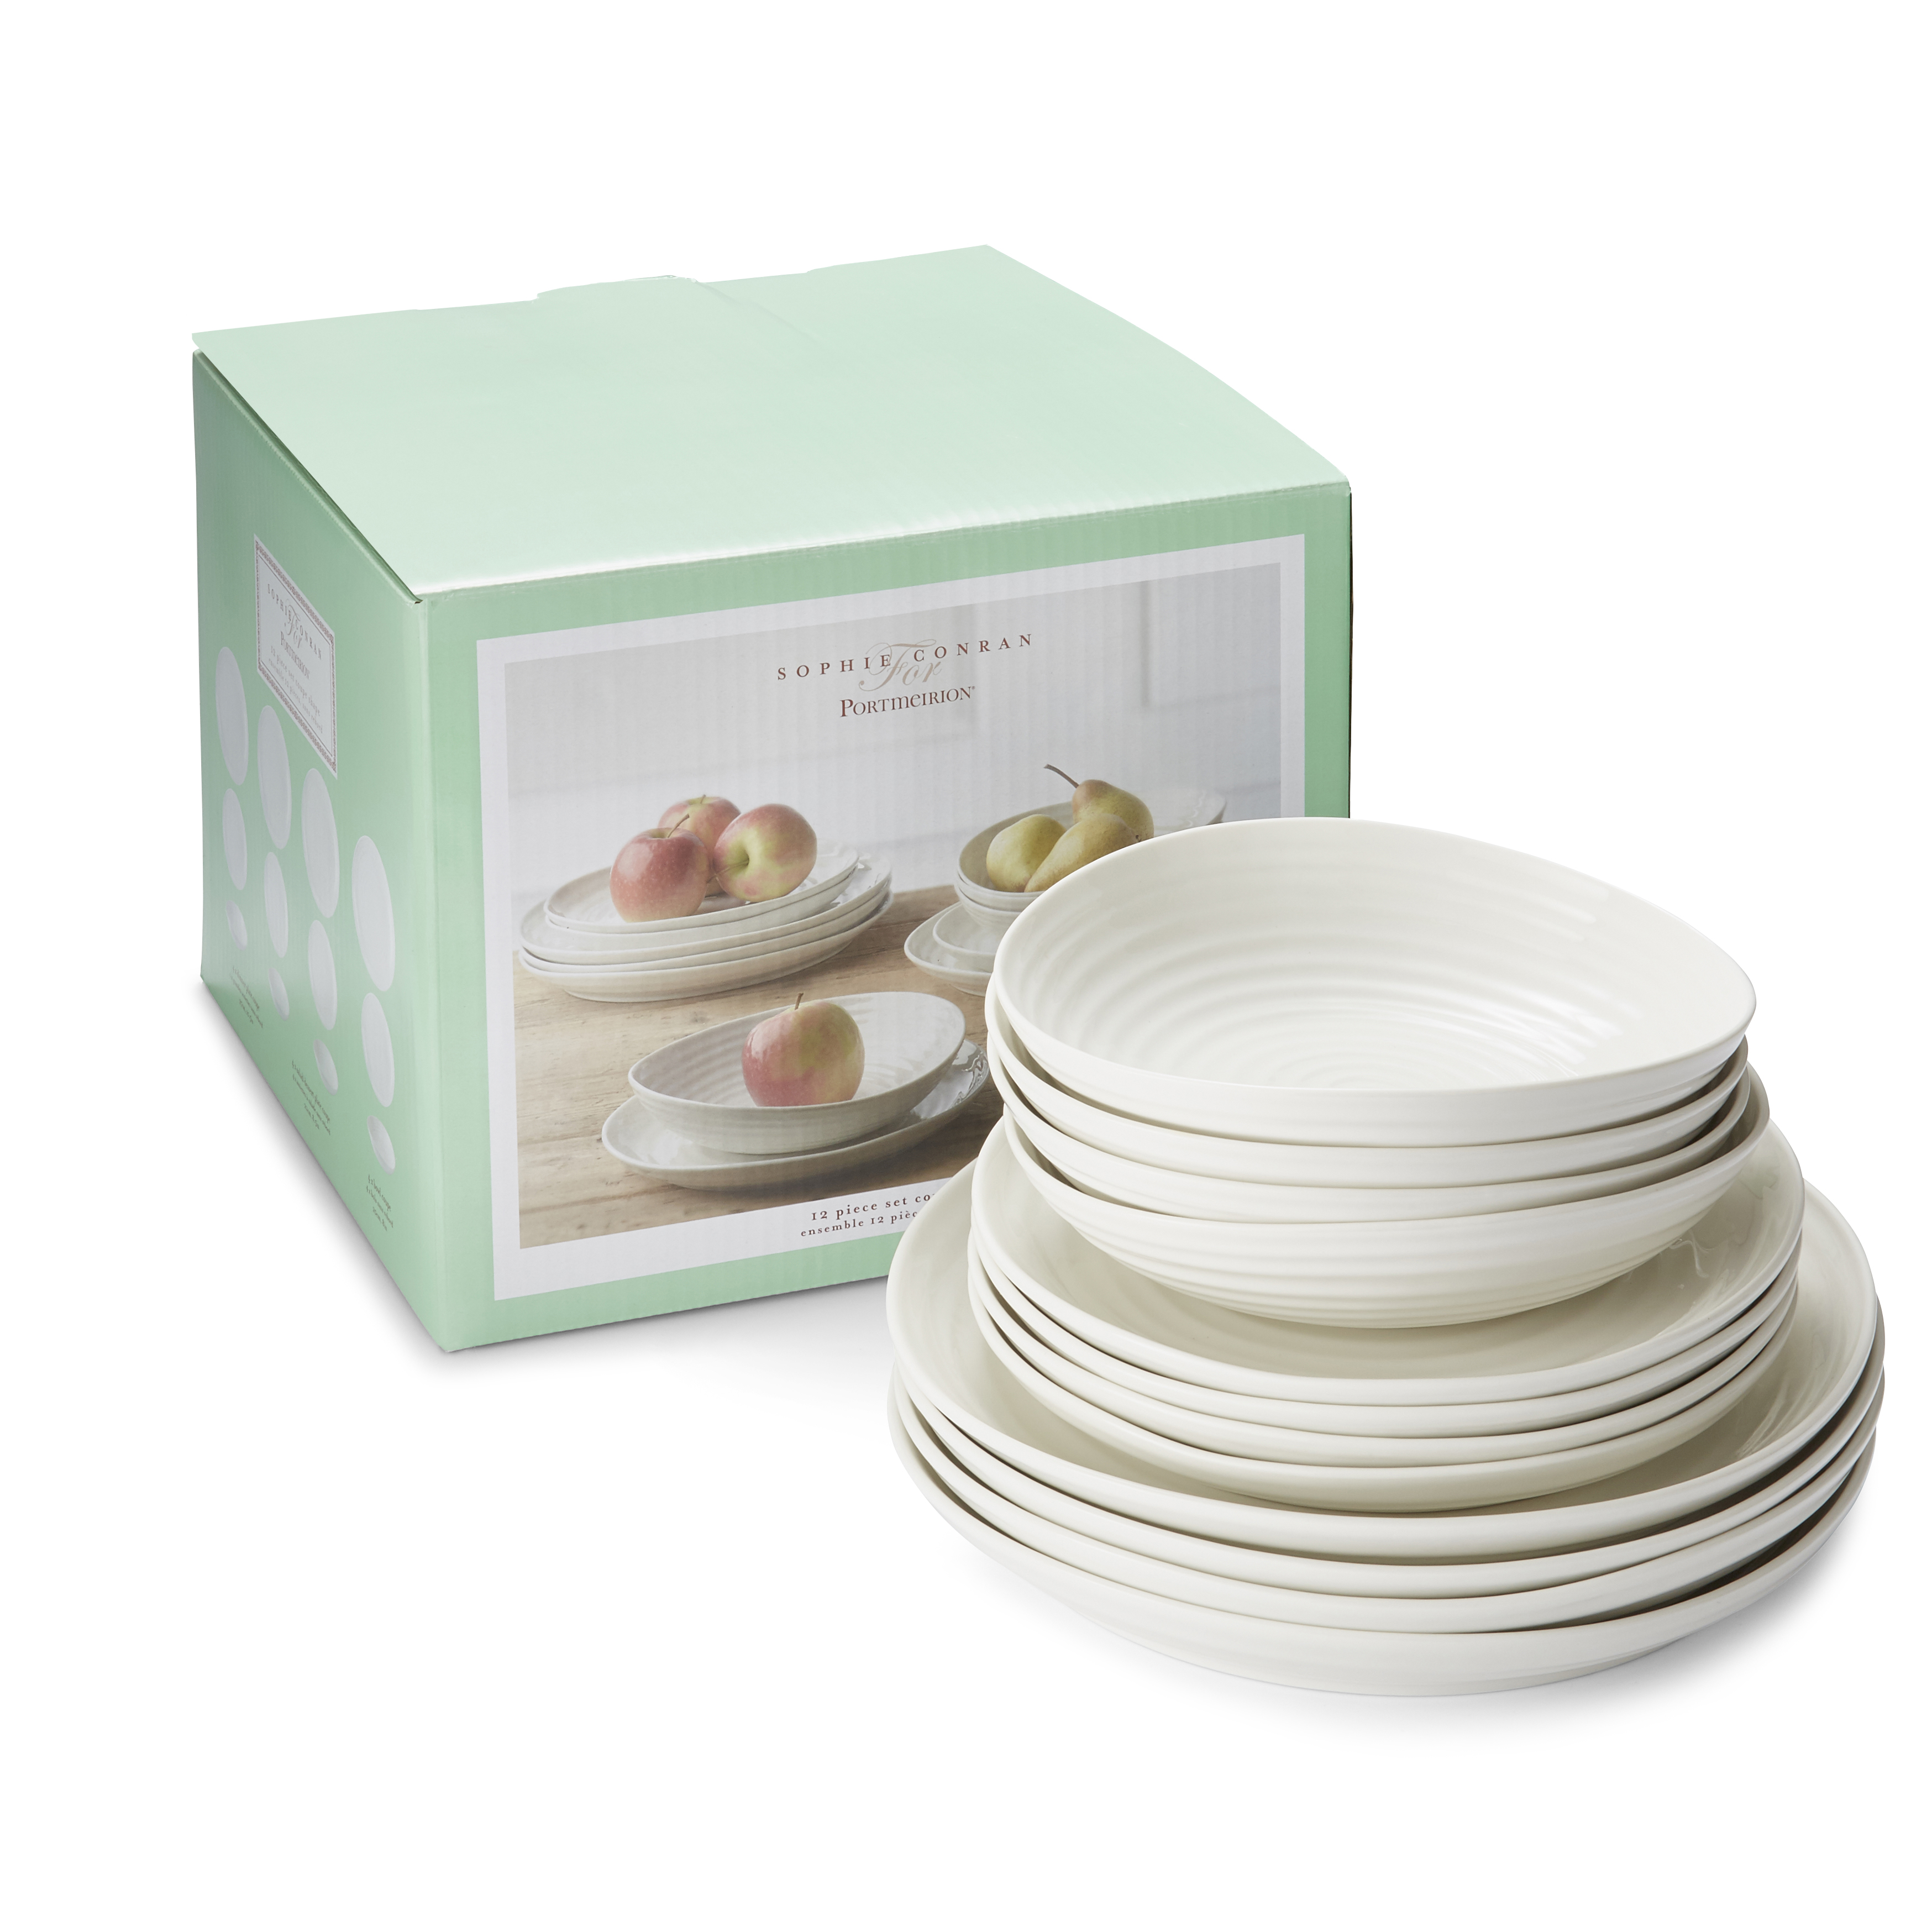 Portmeirion Sophie Conran White 12 Piece Set Coupe Shape image number 2